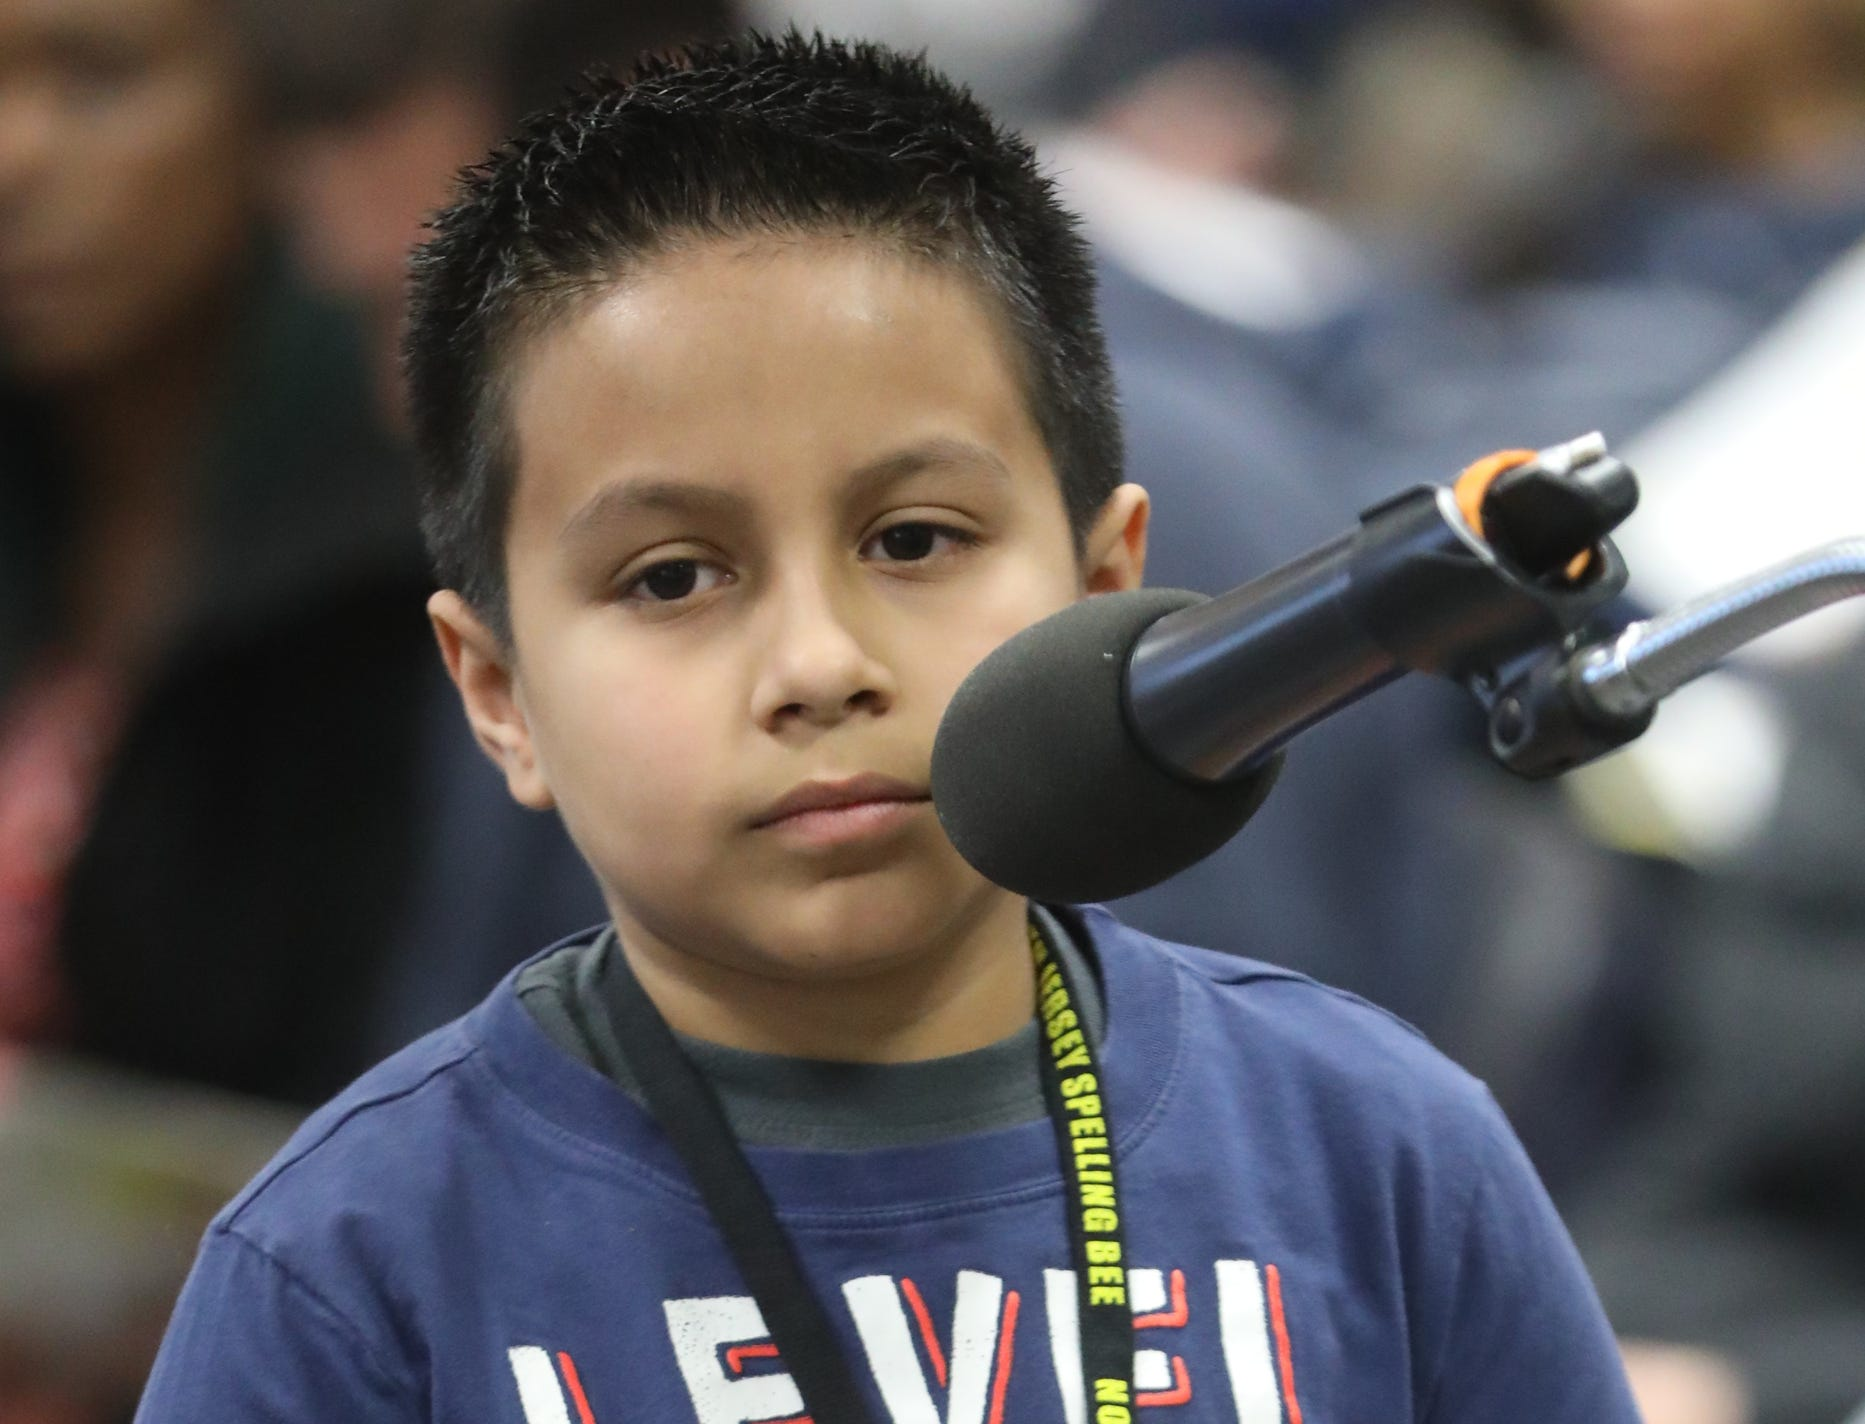 Nicholas Lopez, competes in the first round of the 2019 North Jersey Spelling Bee, in Paramus. Thursday, March 14, 2019